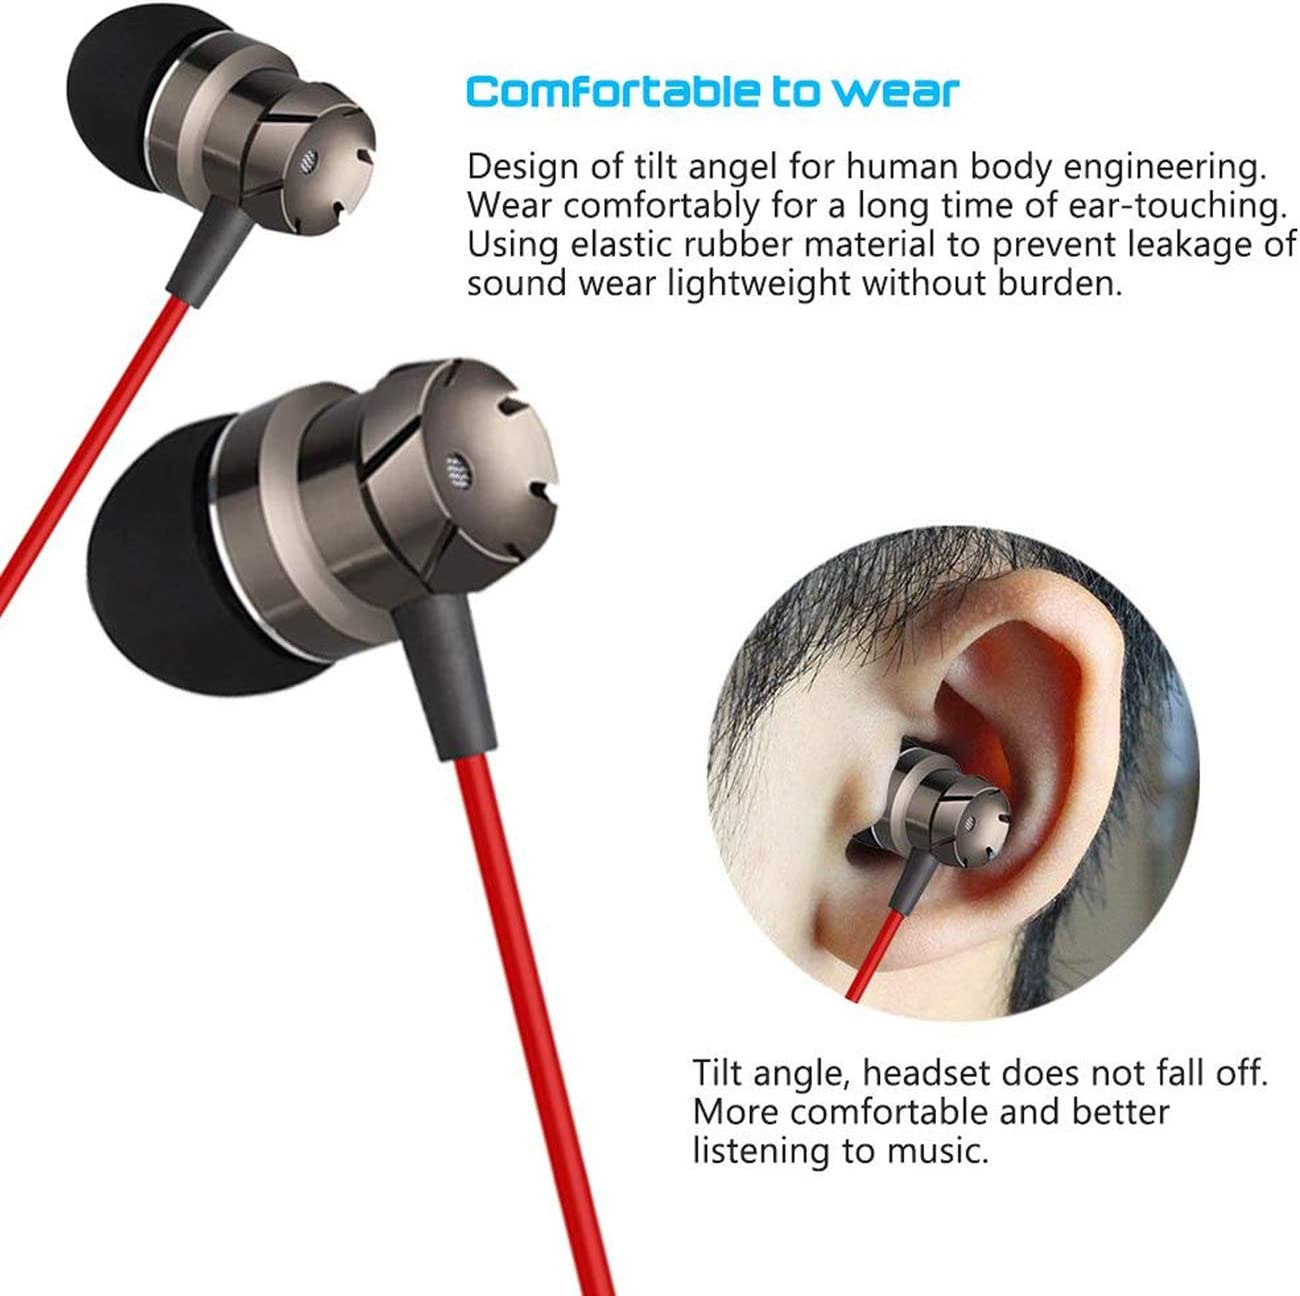 3.5mm in-Ear Earphone Stereo Music Phone Headset with Microphone Headset Super Clear Noise Isolating Earbuds, Sweatproof Earbuds for Gym Running